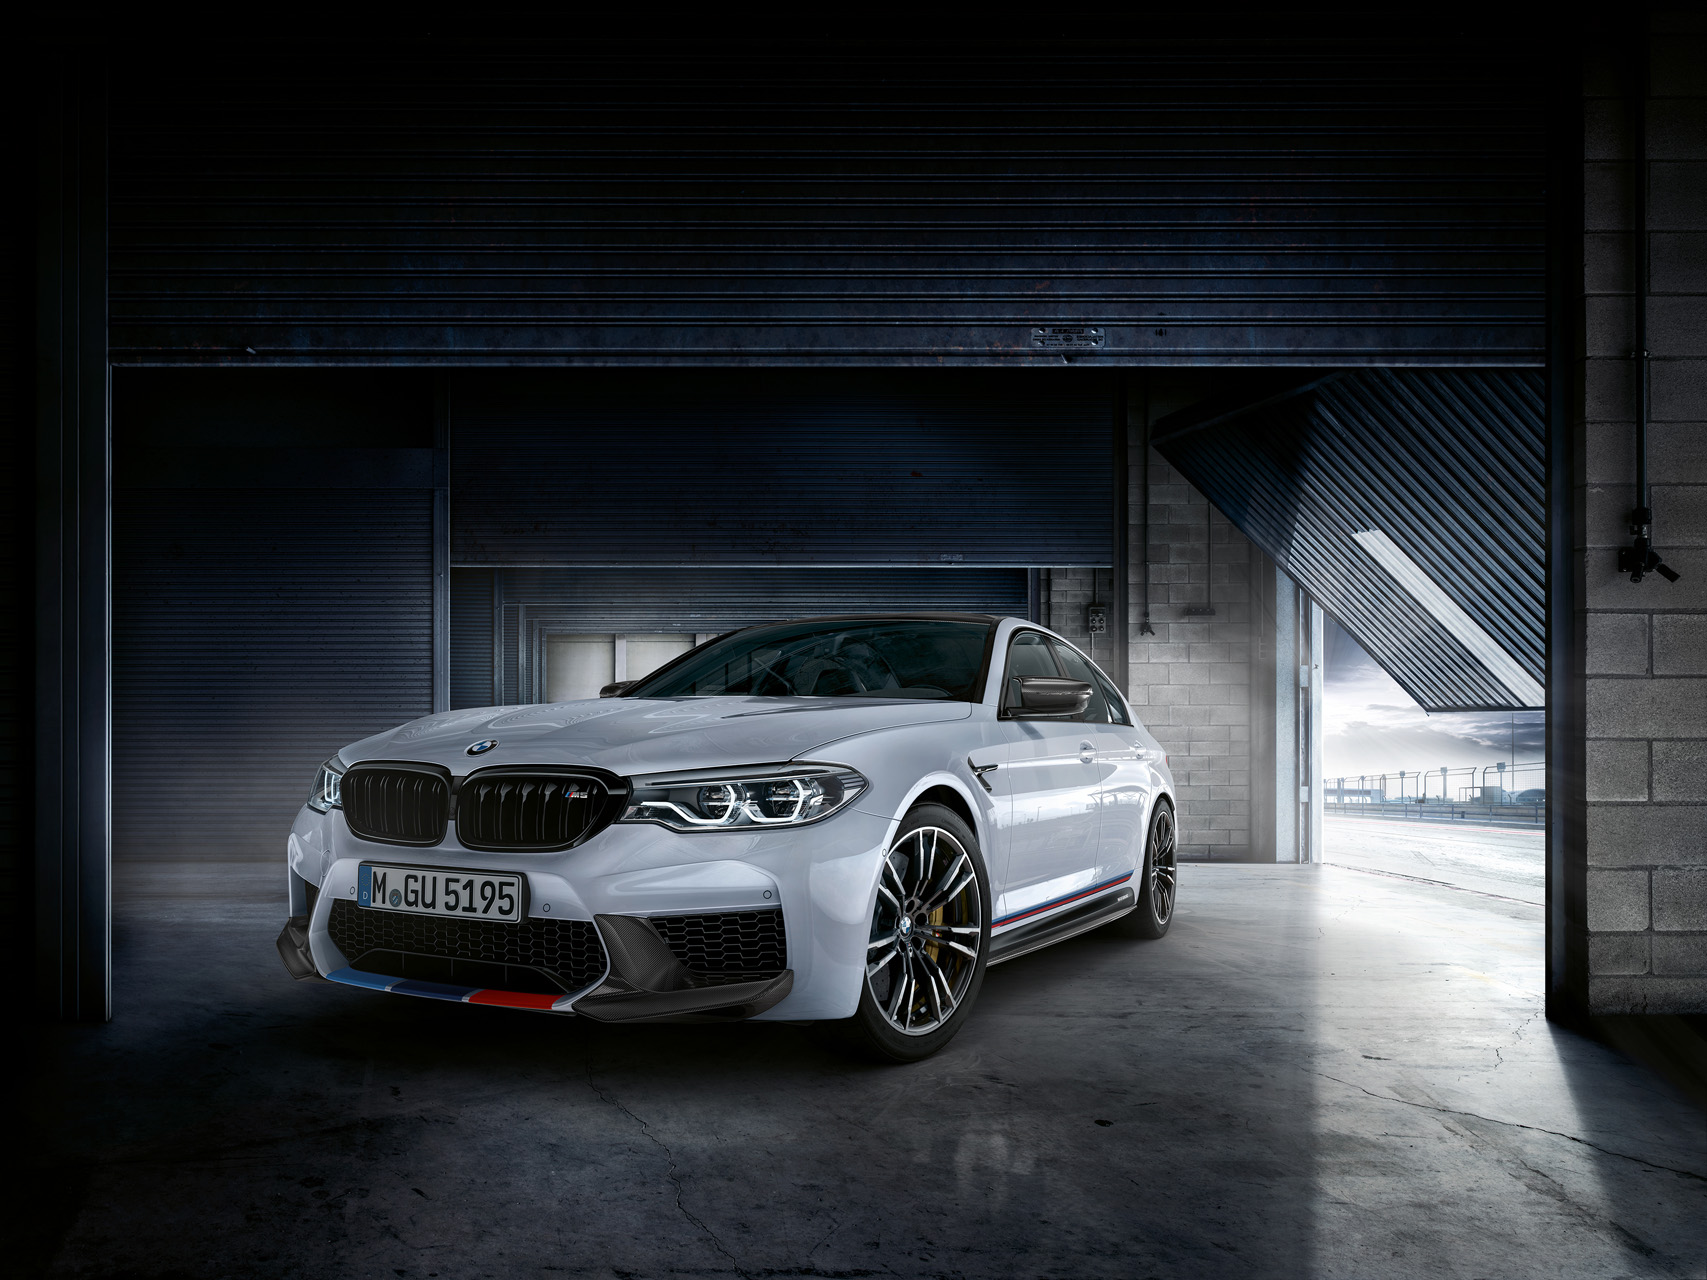 exclusive bmw m performance parts for the new m5 bmw markhamat the sema show in las vegas, bmw is now presenting a further highlight a comprehensive range of exclusive m performance parts for the bmw m5